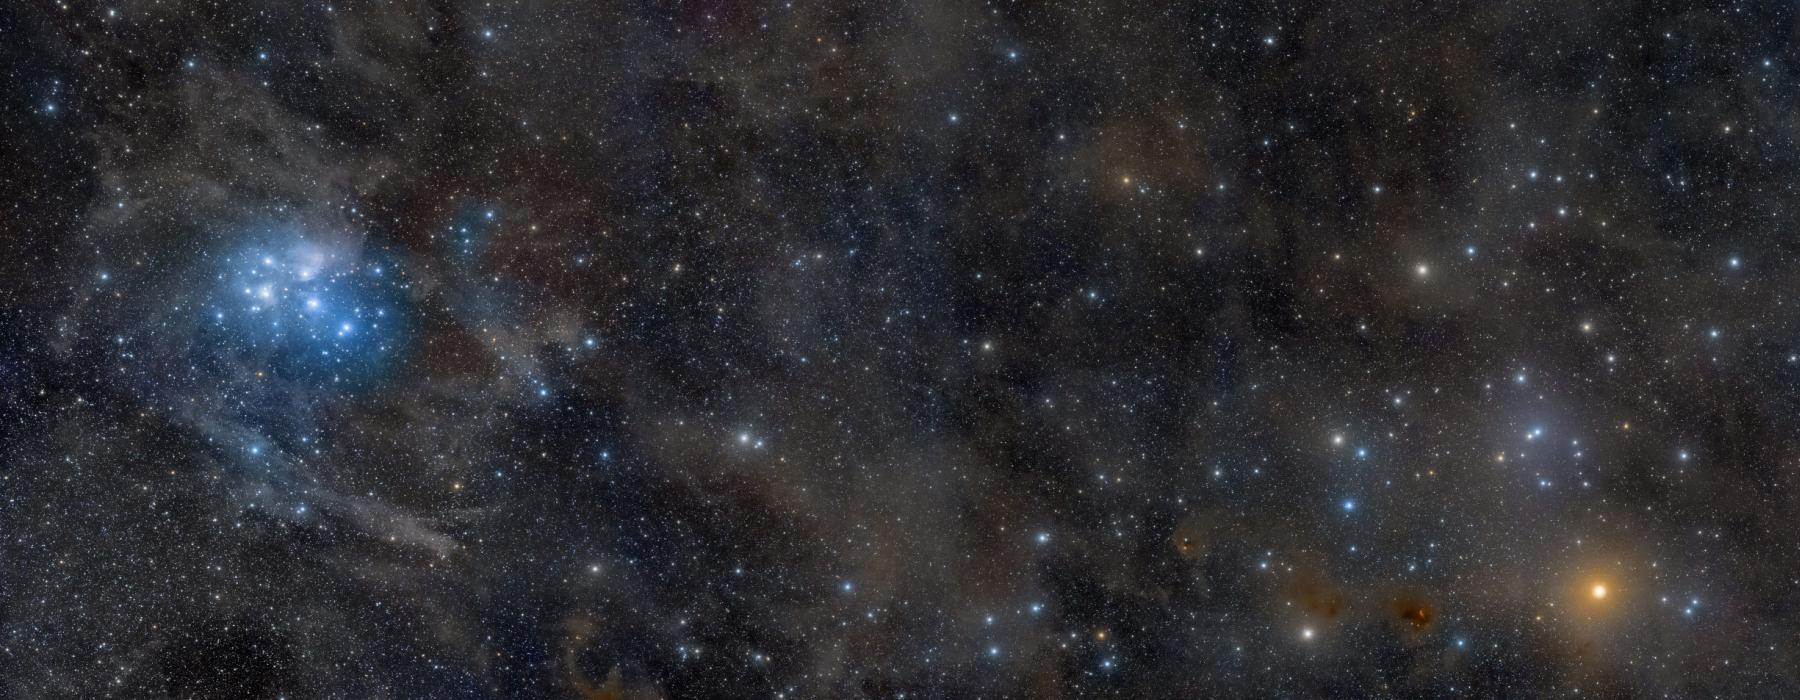 The Matariki star cluster situated in the night sky